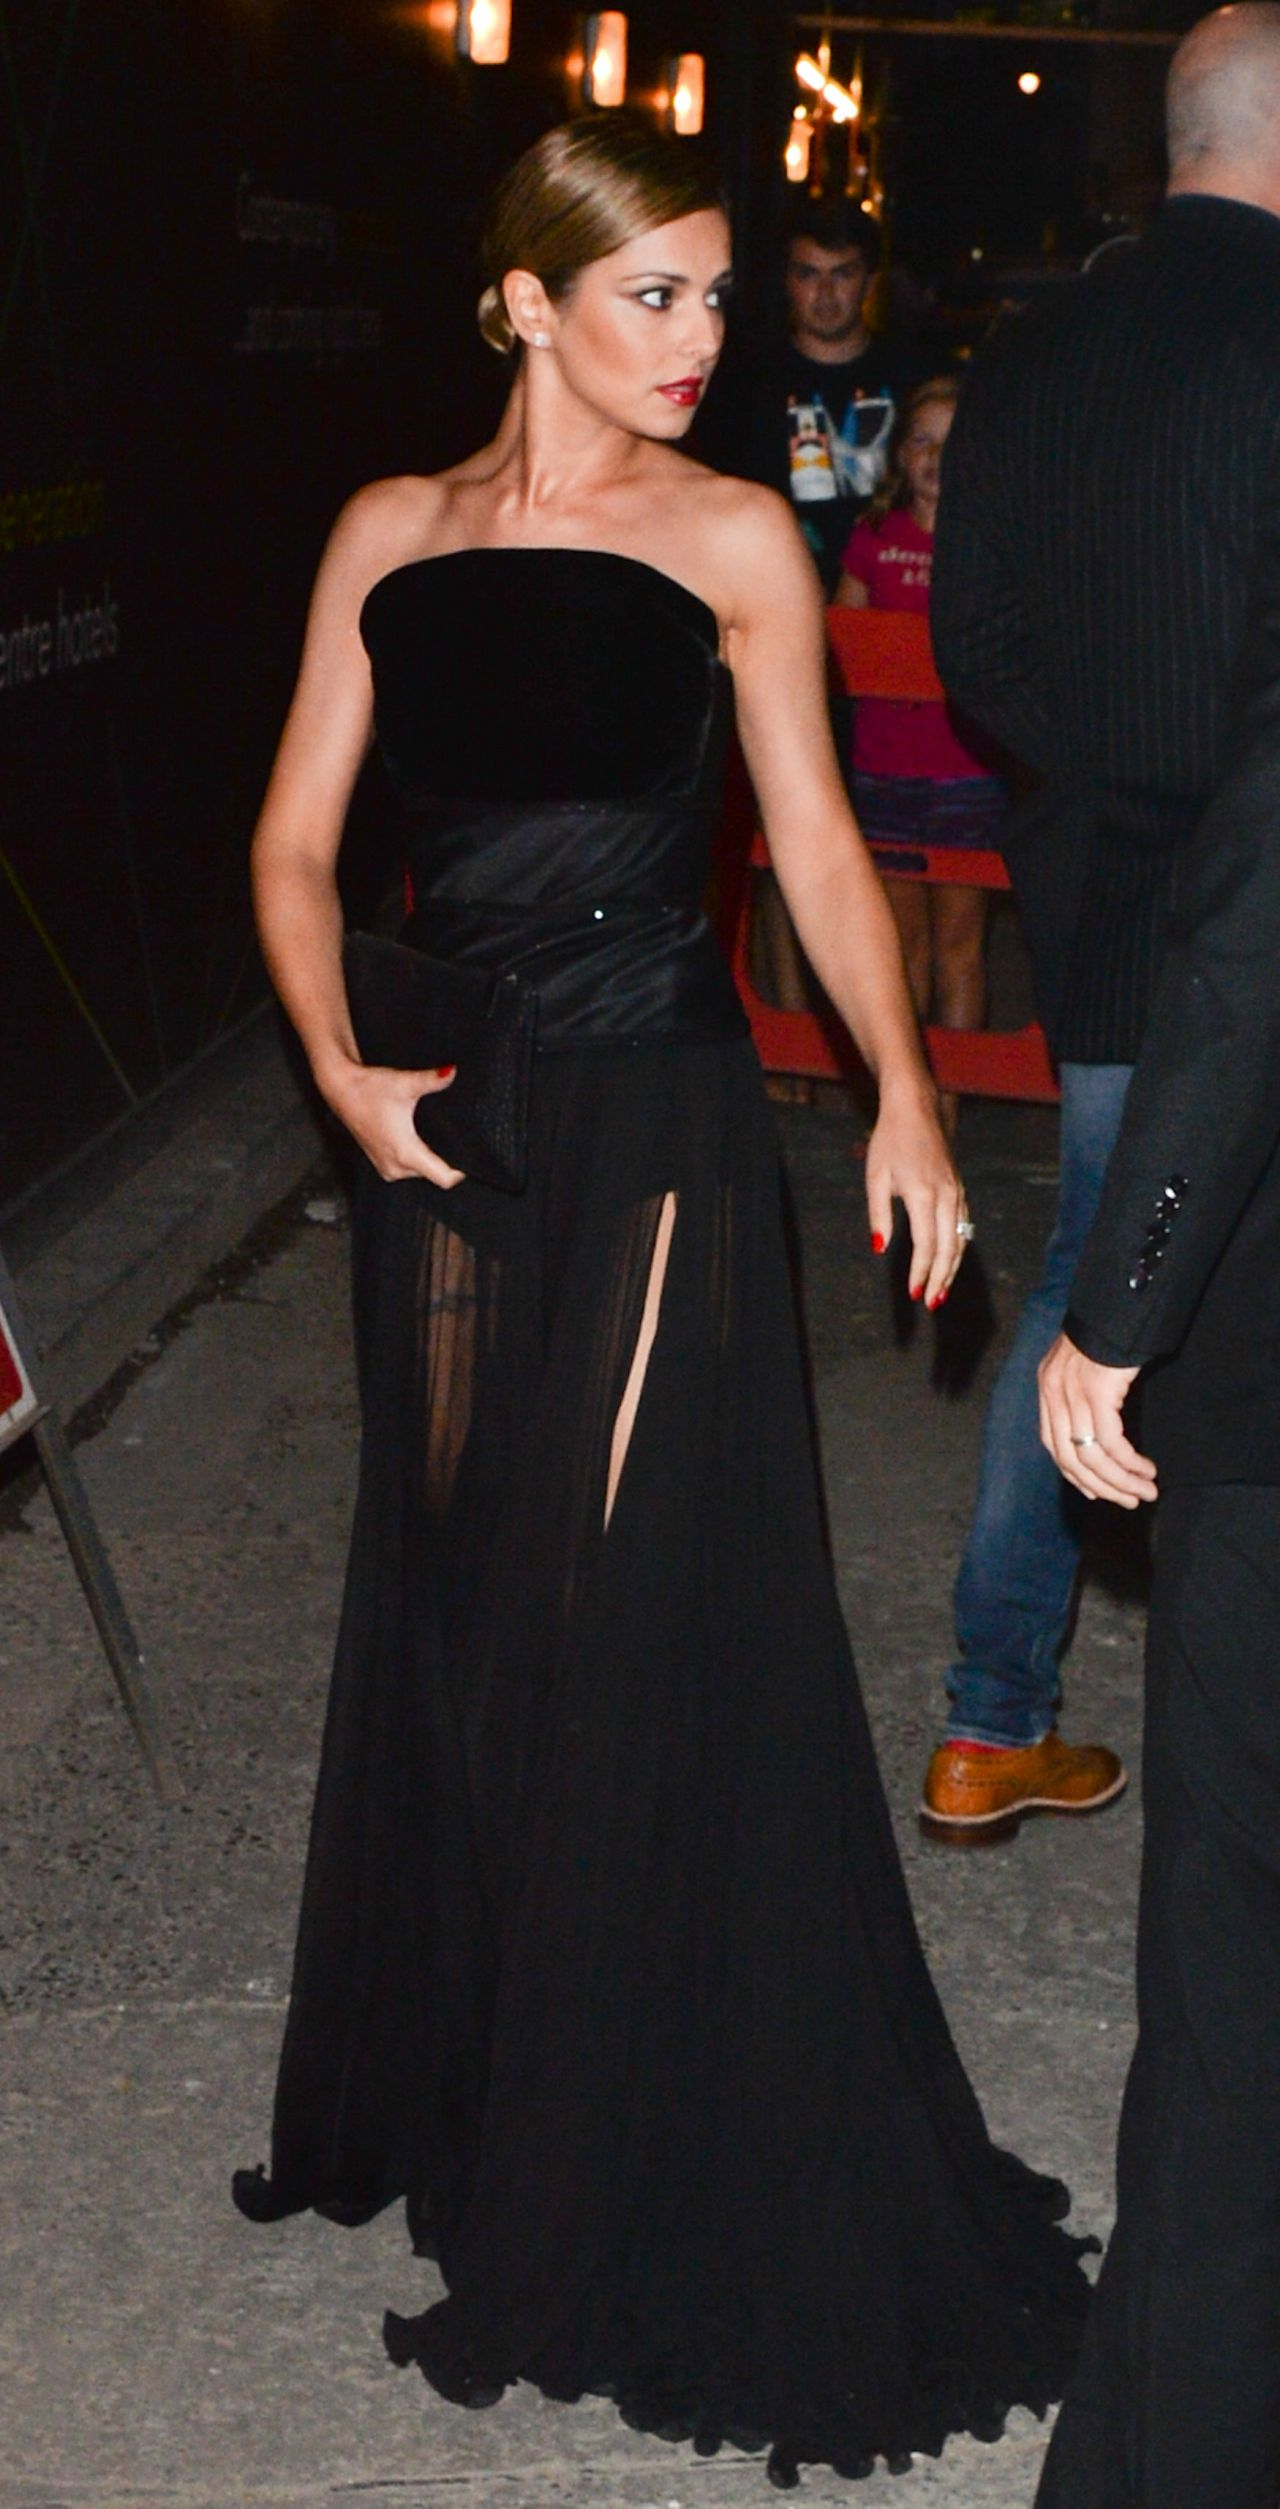 Cheryl Cole (Cheryl Fernandez-Versini) - Wedding Party in London - July 2014